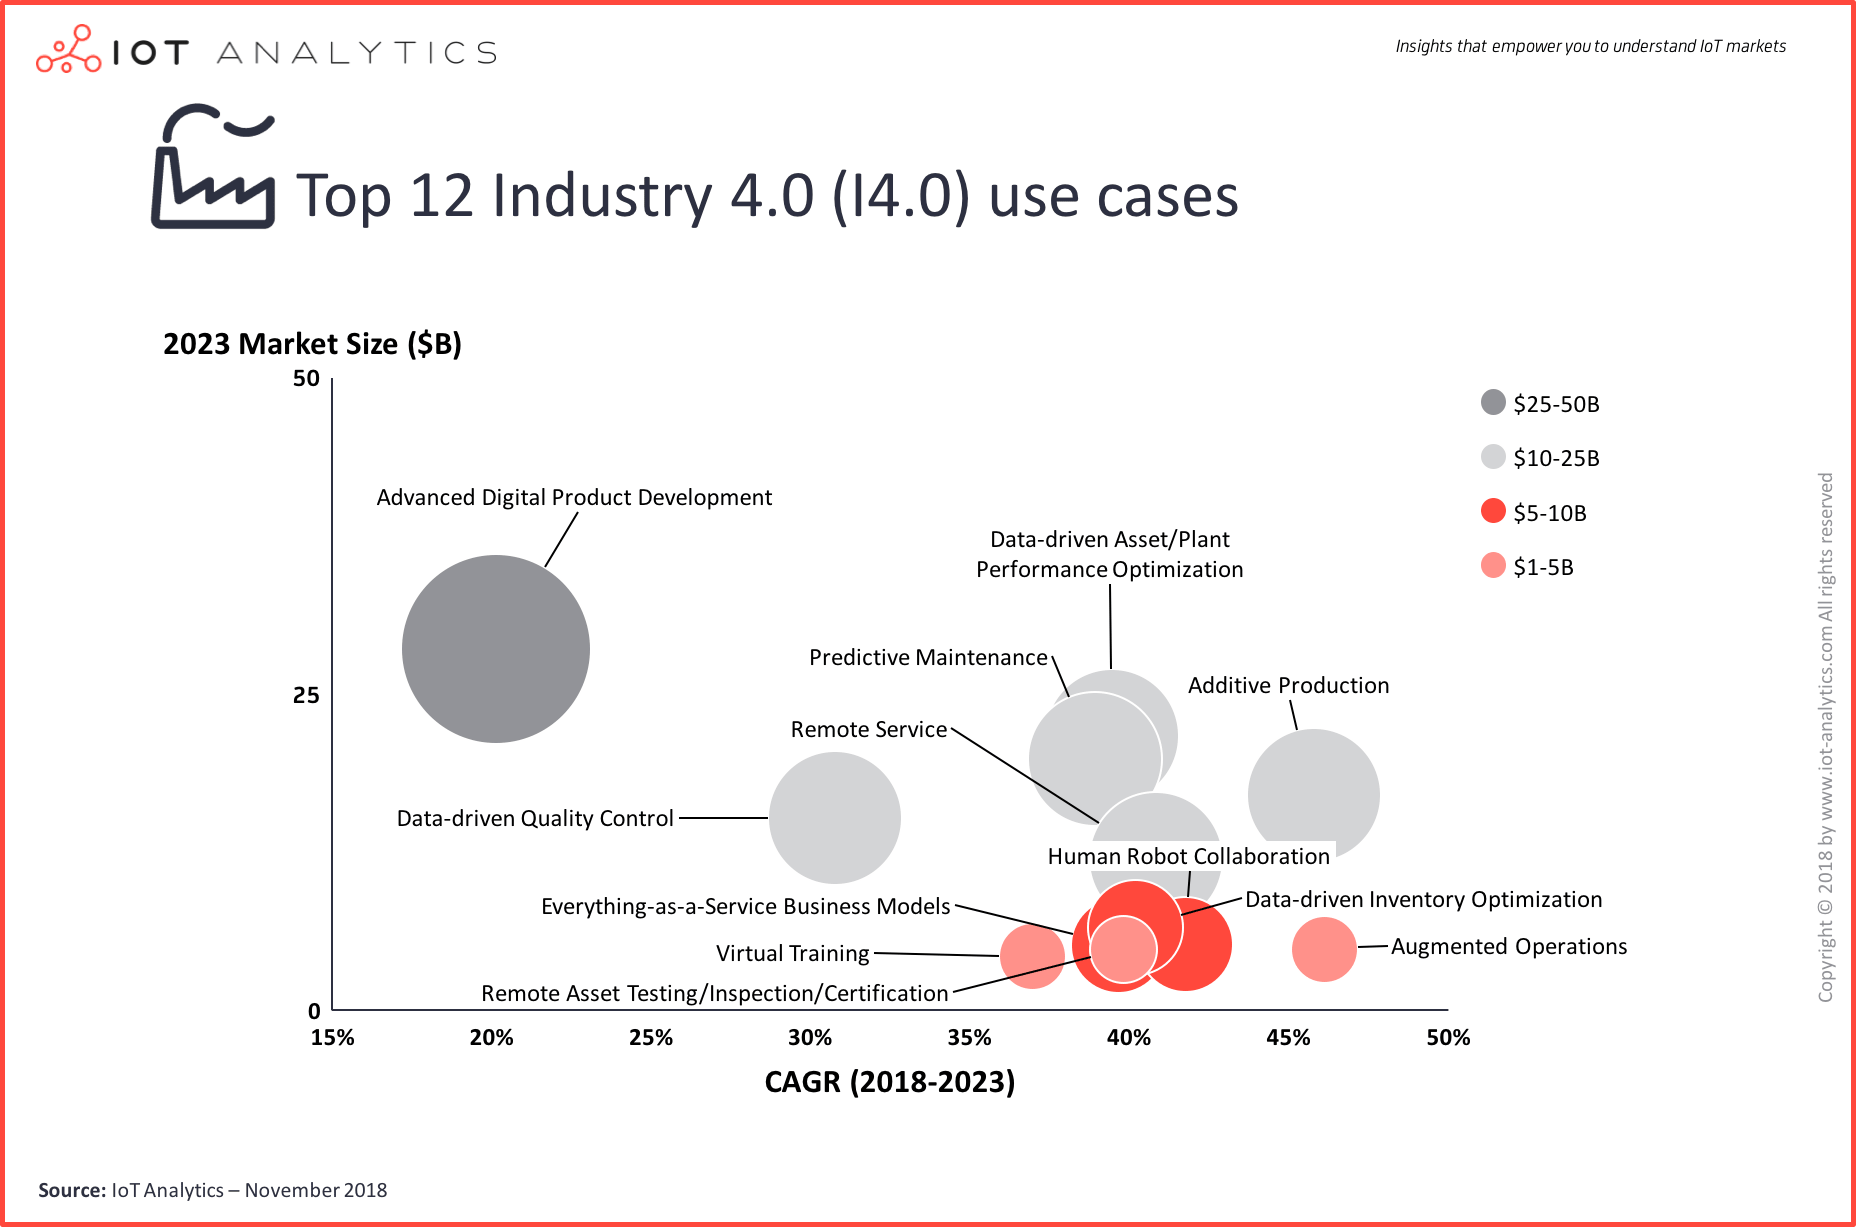 Industry 4.0 and Smart Manufacturing Use Cases